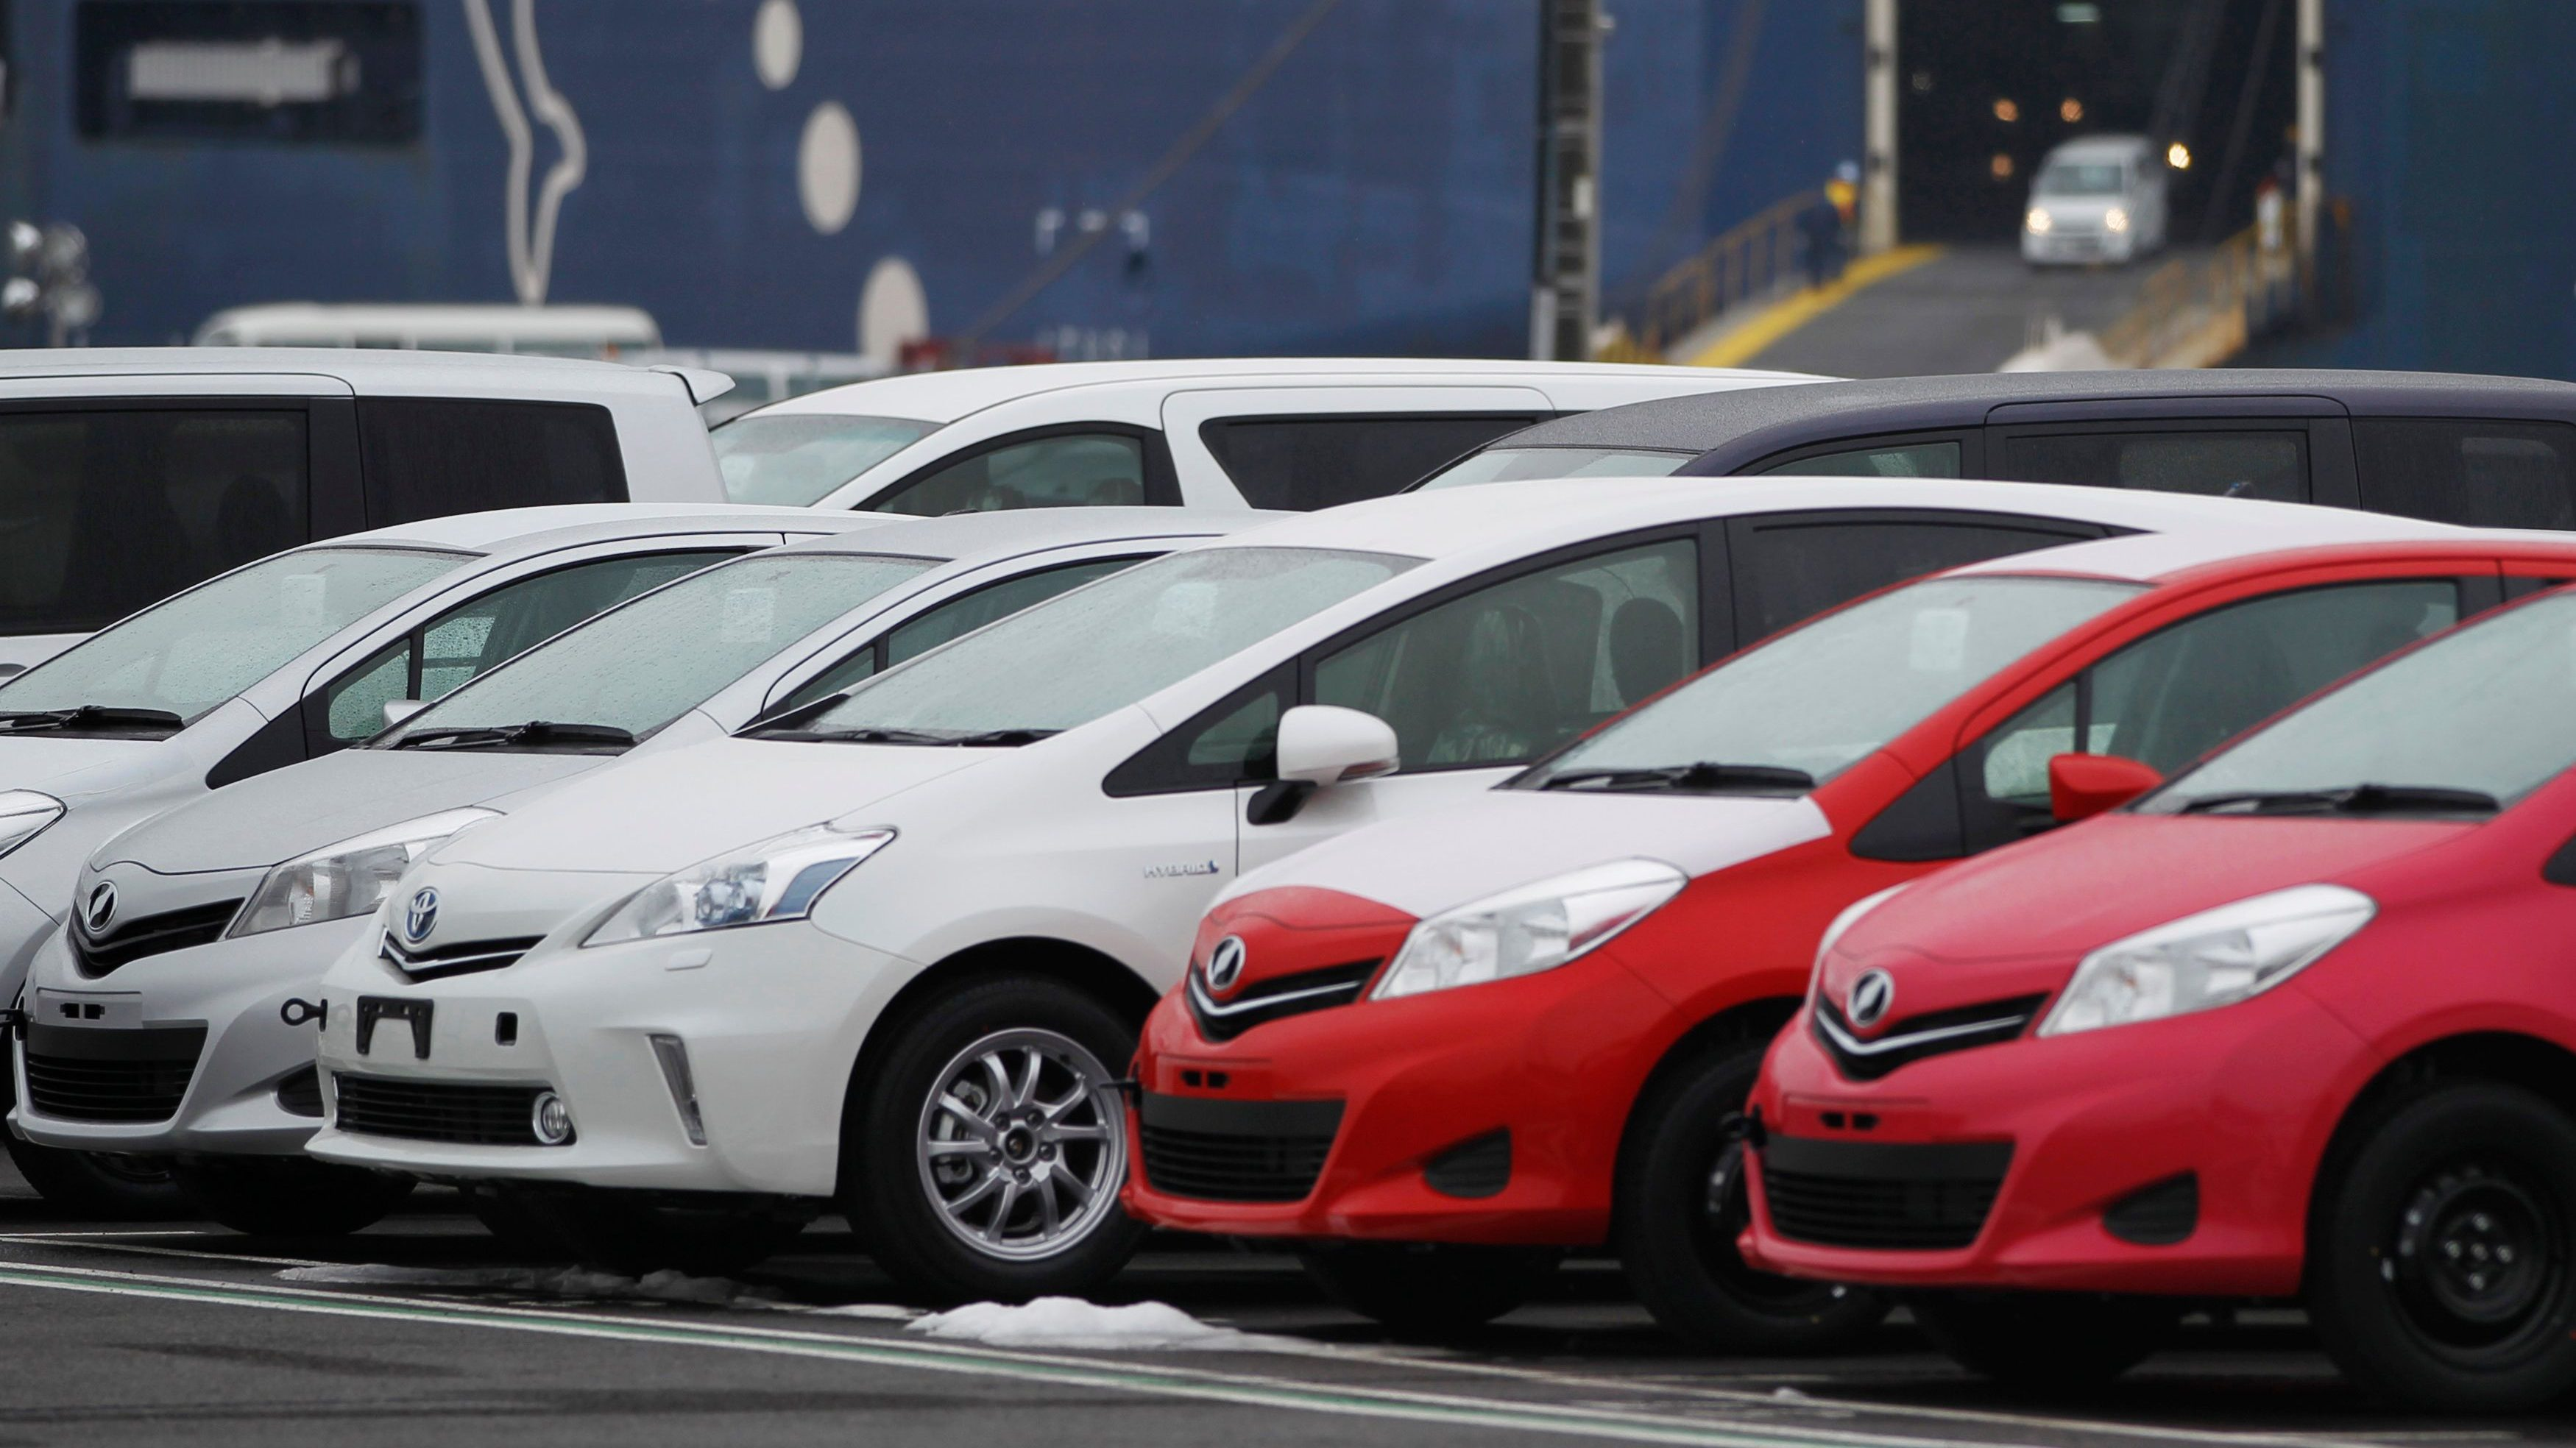 Delightful Newly Produced Toyota Cars Are Seen Parked At Sendai Port In Sendai, Miyagi  Prefecture,